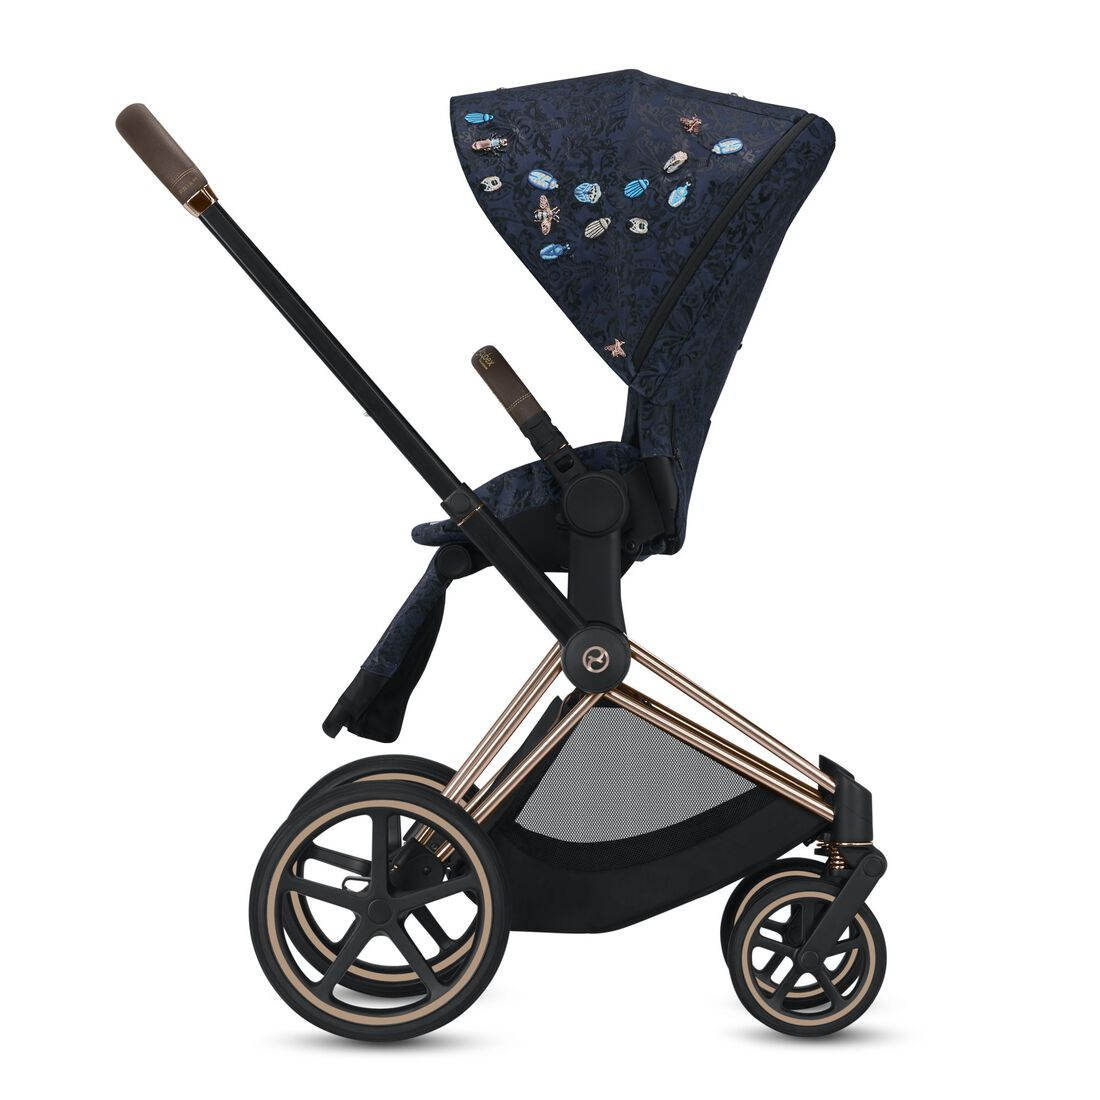 CYBEX Priam Seat Pack - Jewels of Nature in Jewels of Nature large image number 2